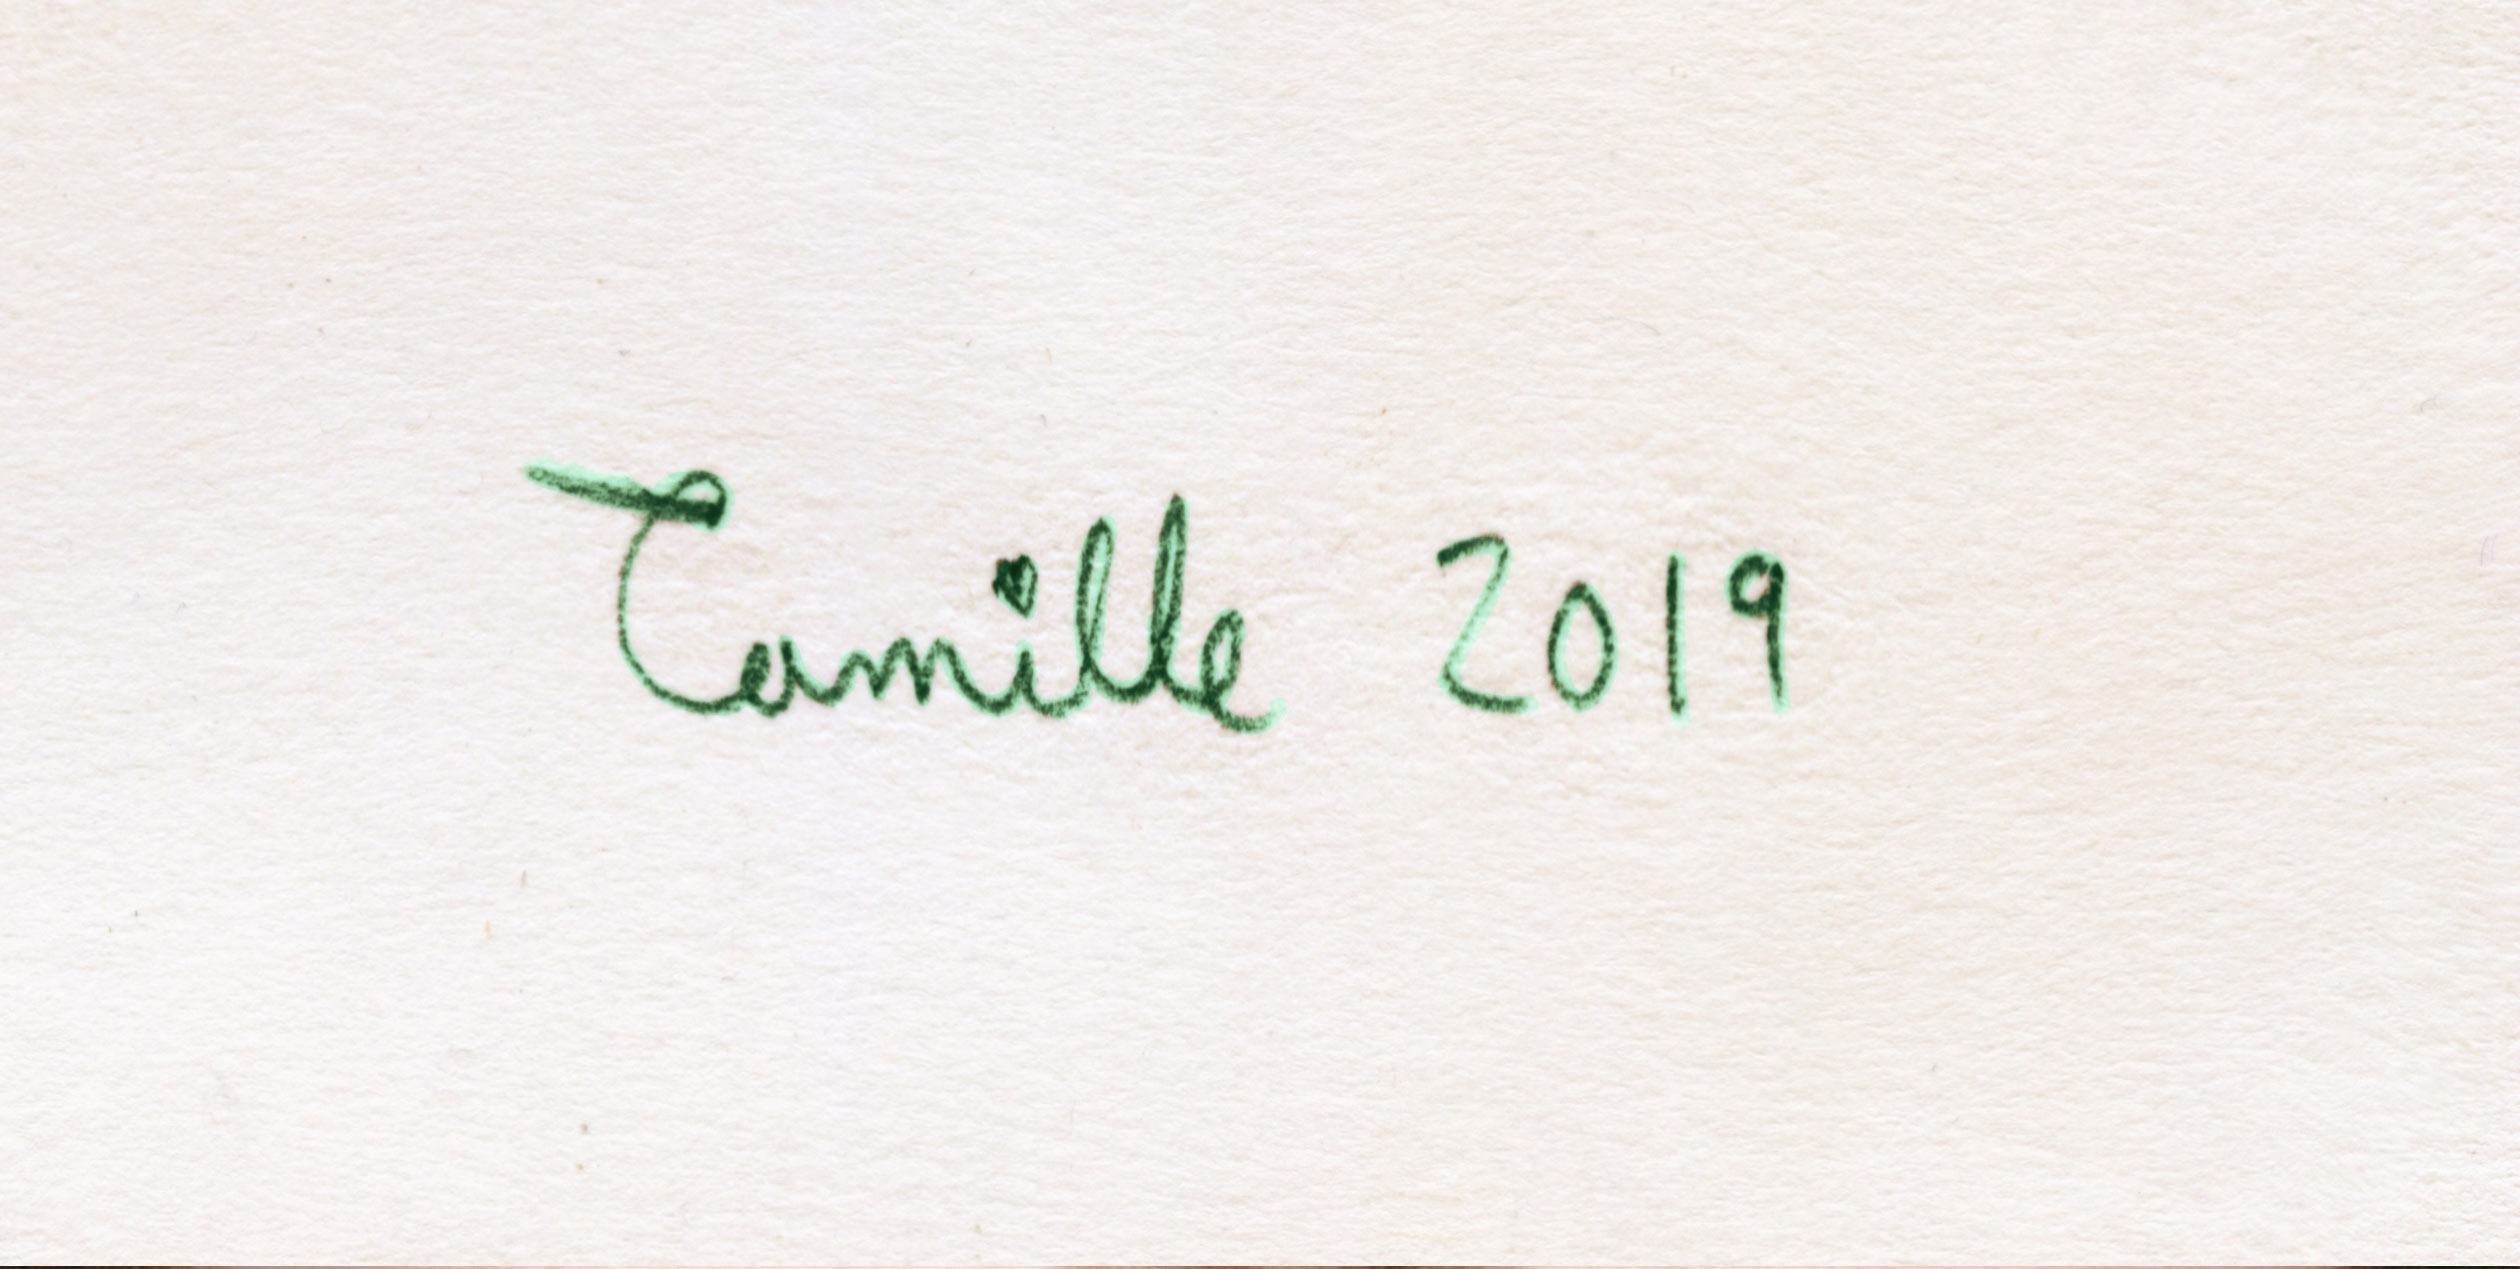 Hand writing Cursive Camille 2019